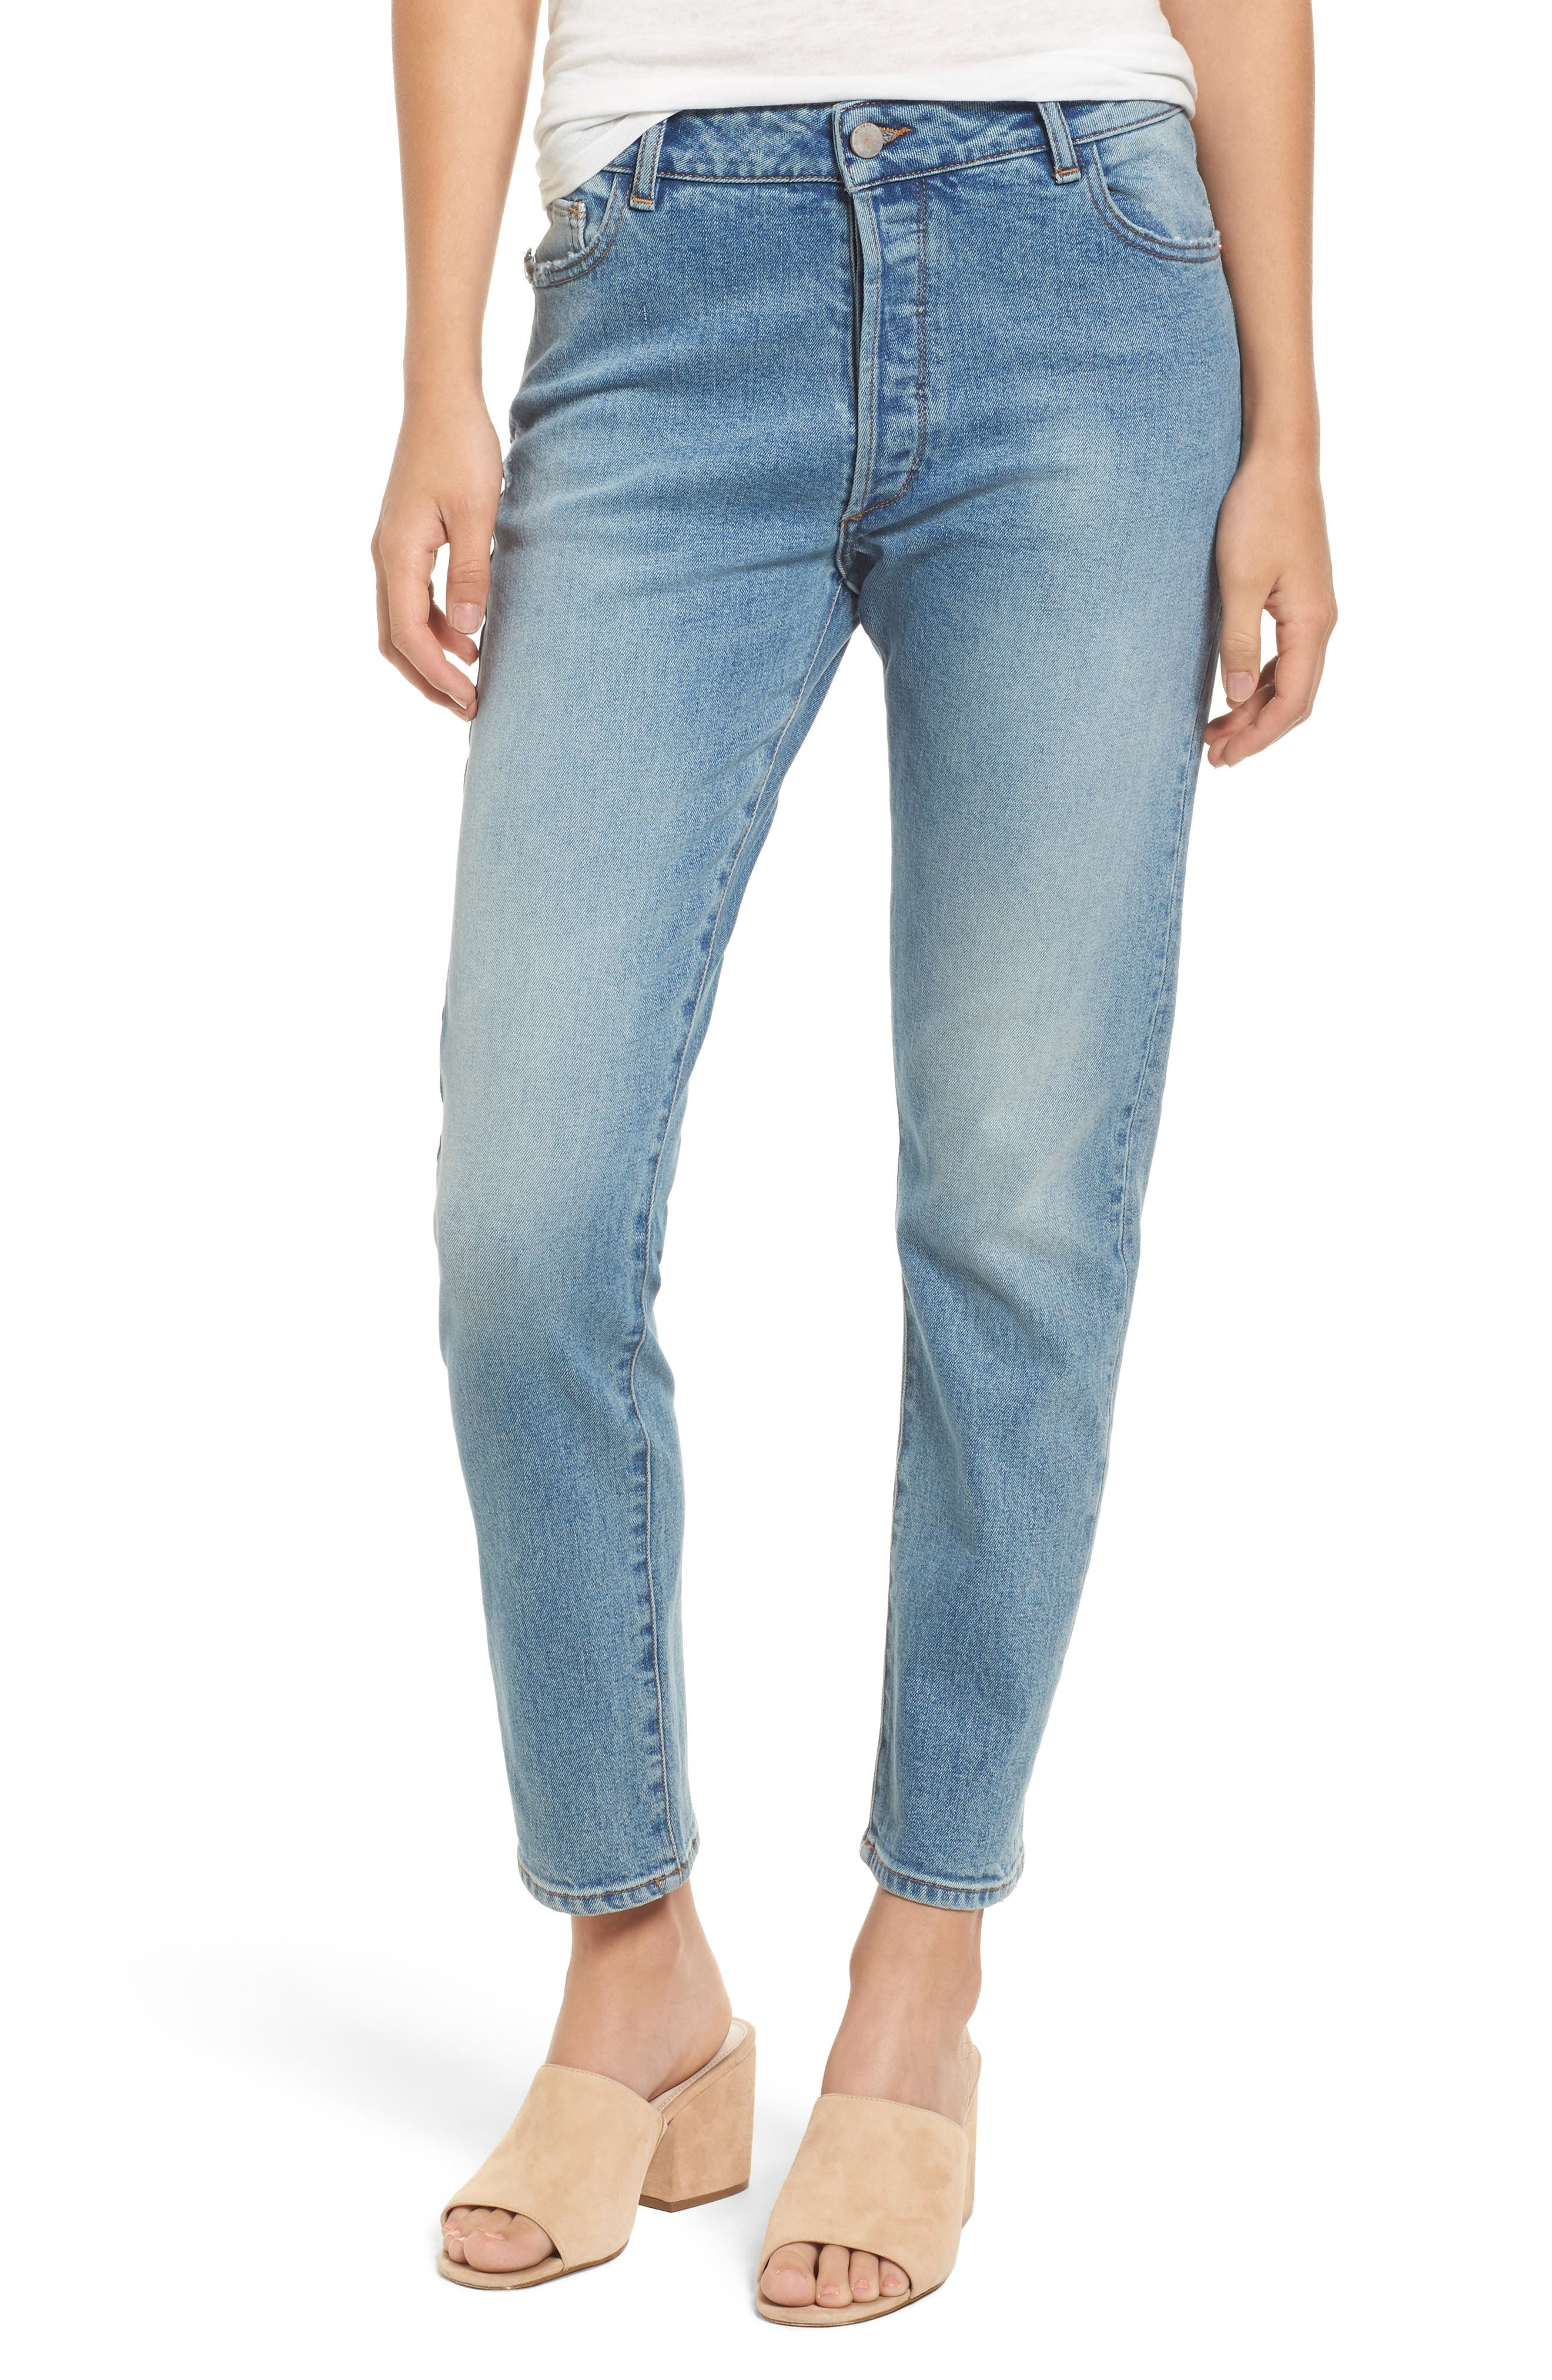 Bella High Waist Ankle Skinny Jeans,                             Main thumbnail 1, color,                             430